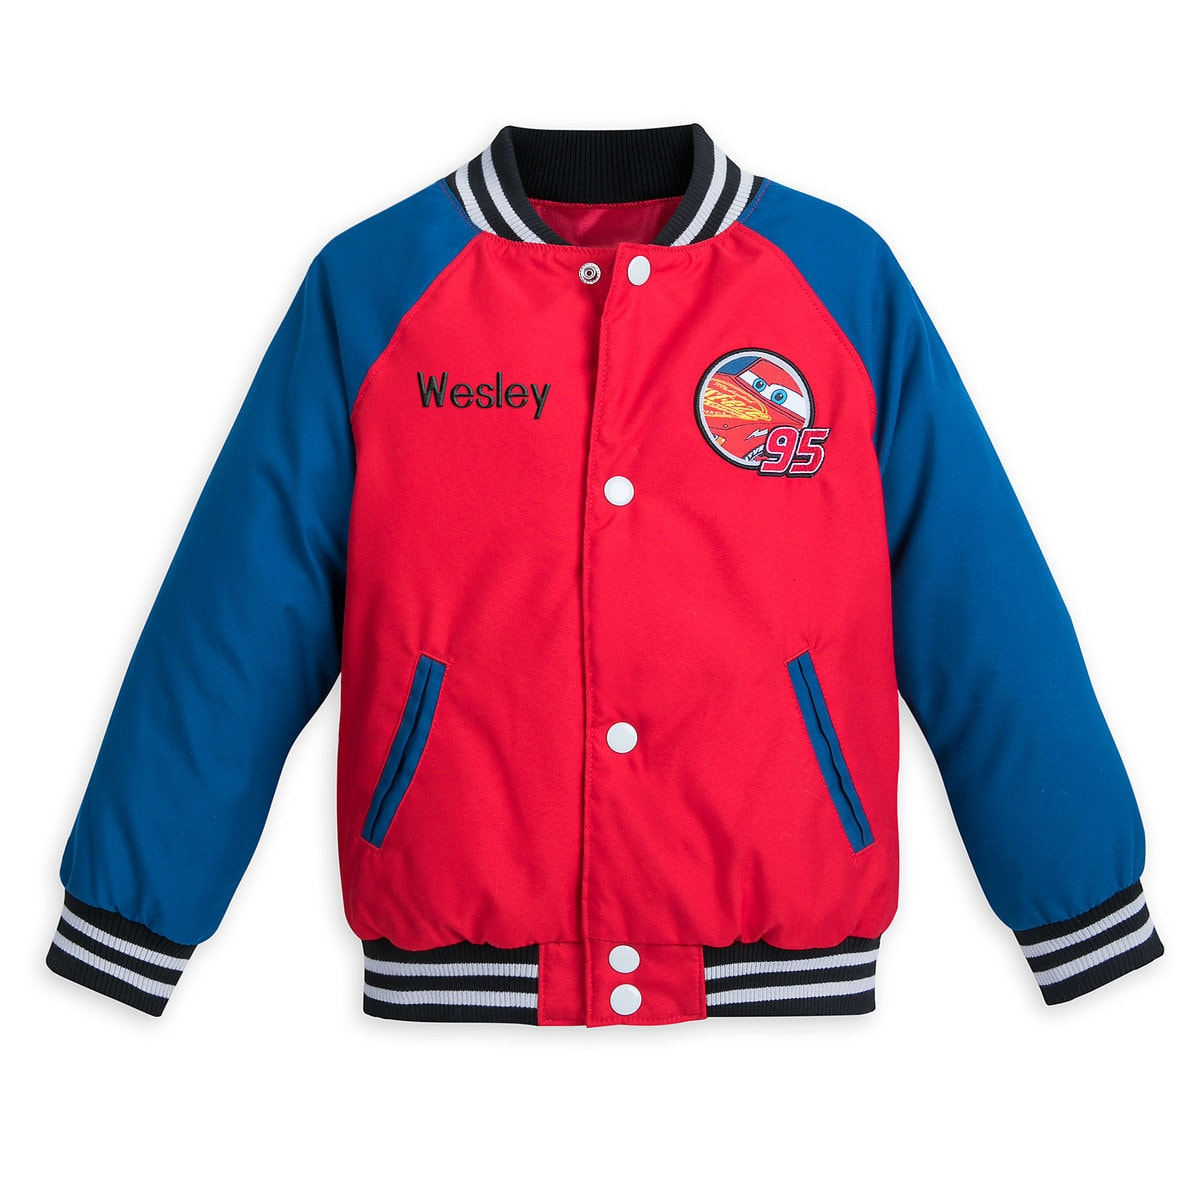 dc476e9221f8 Product Image of Lightning McQueen Varsity Jacket for Boys - Personalizable  # 1